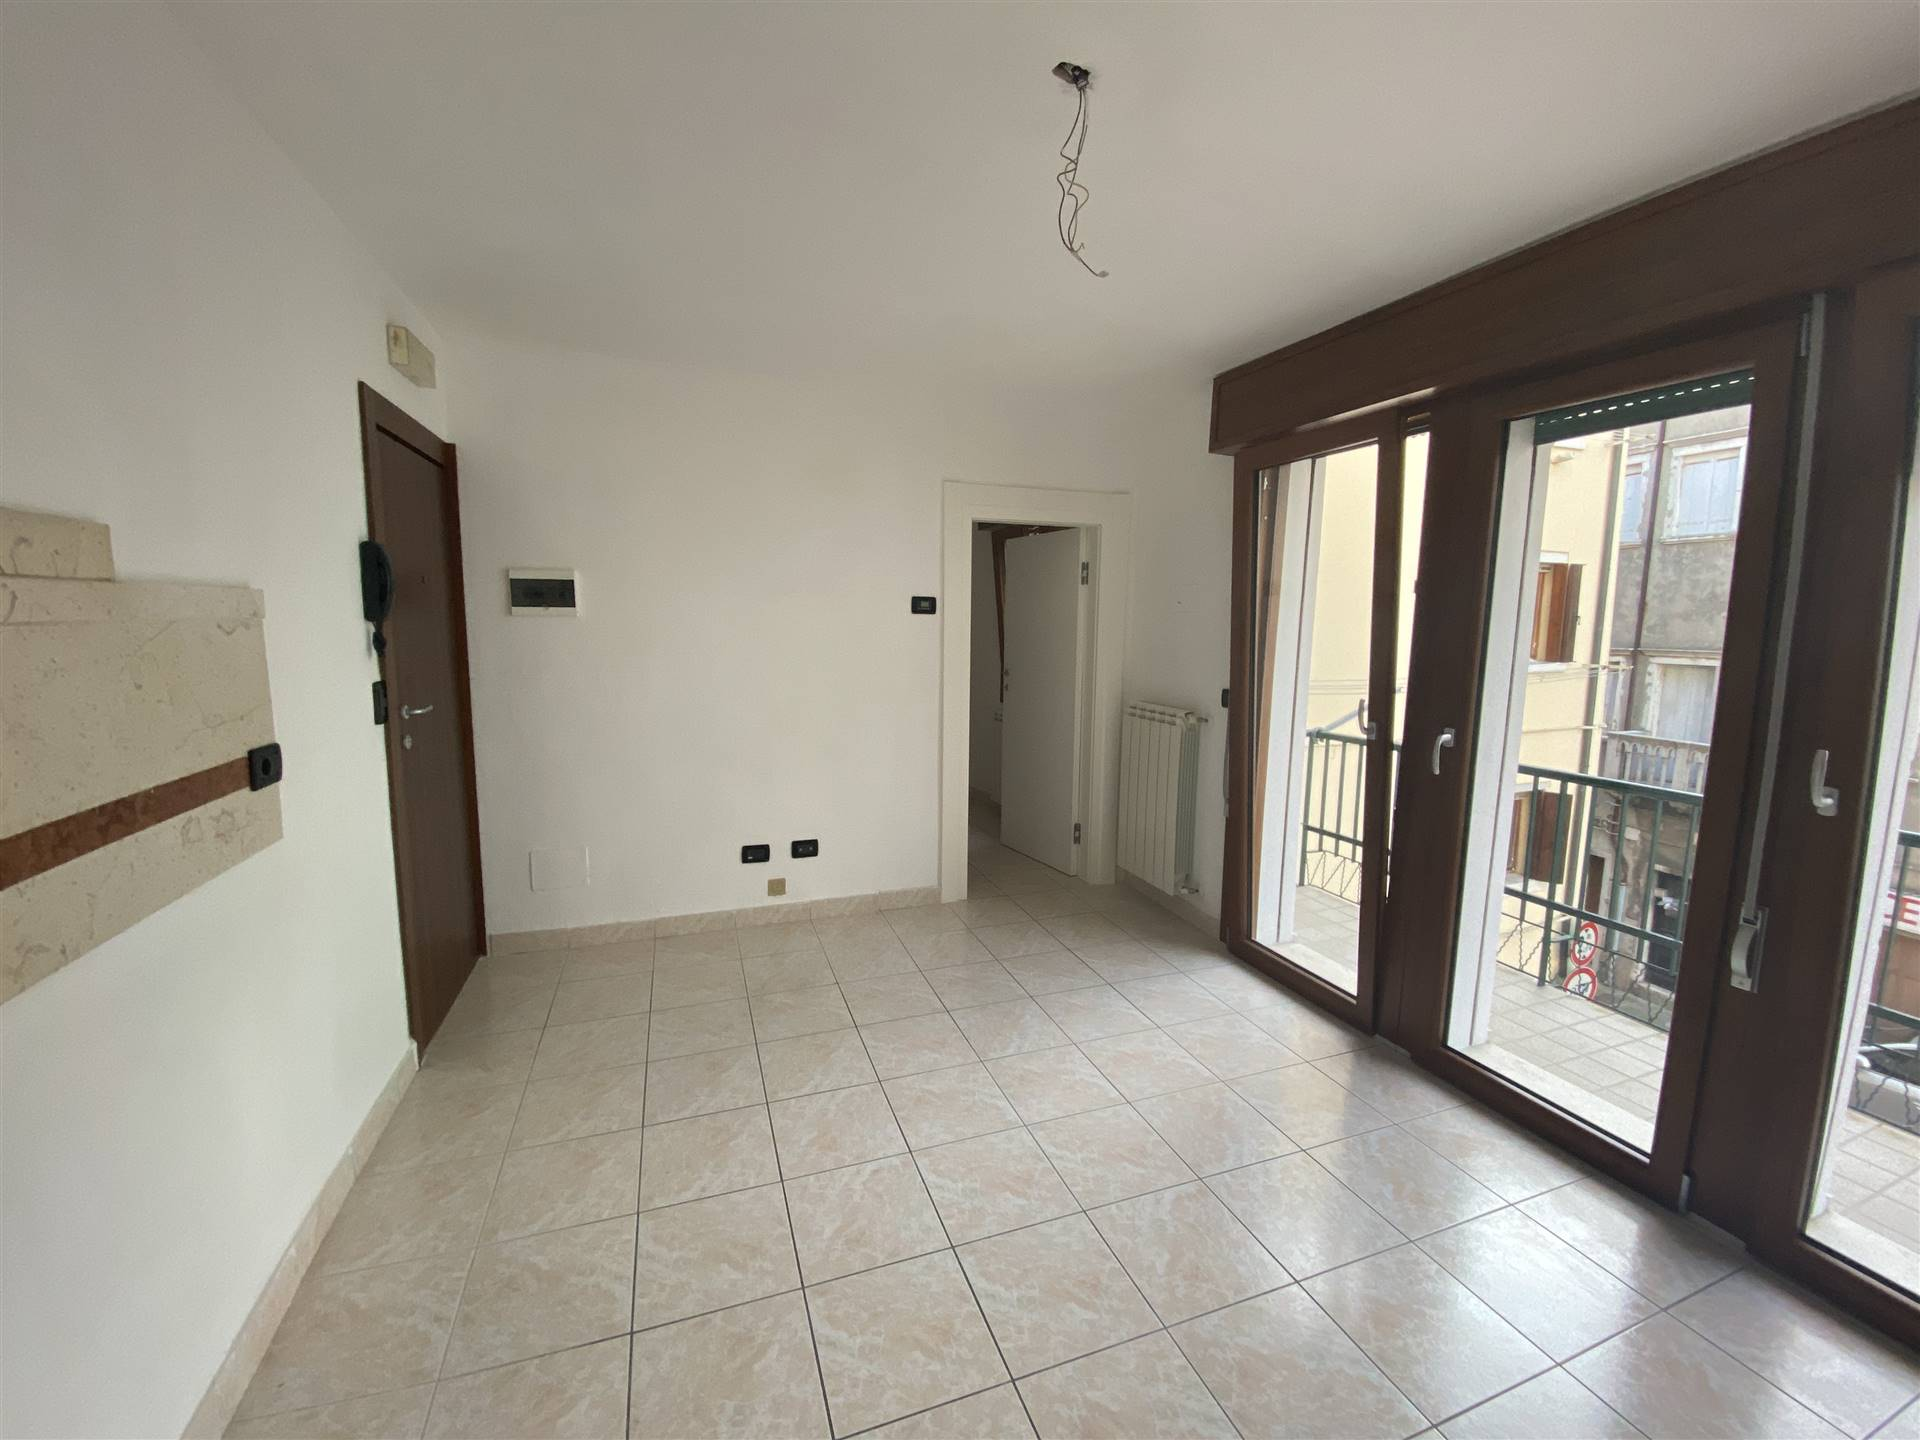 CHIOGGIA CENTRO, CHIOGGIA, Apartment for rent of 50 Sq. mt., Energetic class: G, placed at 2°, composed by: 3 Rooms, Separate kitchen, 2 Bedrooms, 1